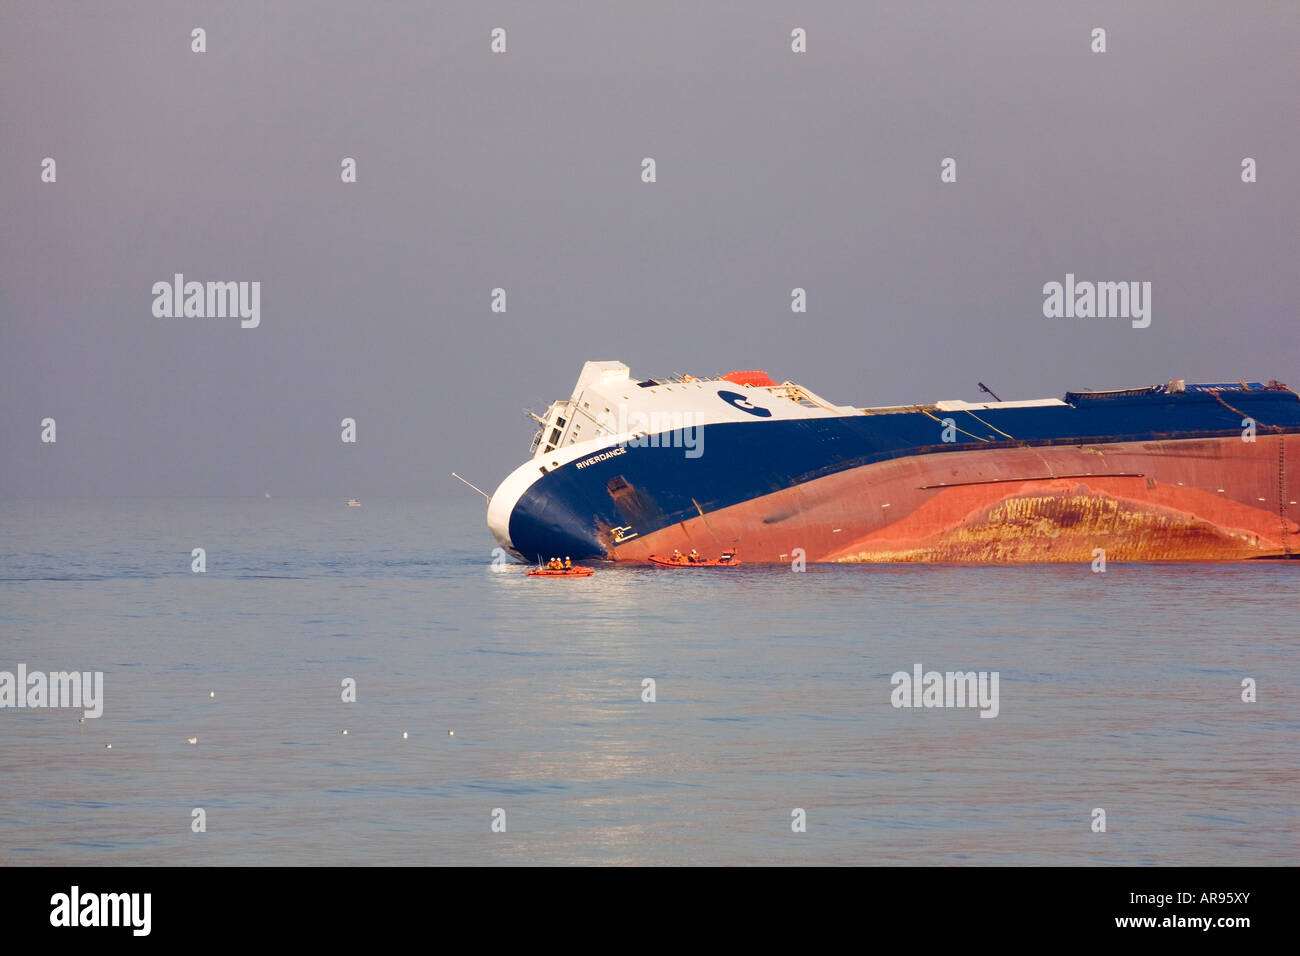 The shipwrecked Riverdance was a RORO ferry in service with Seatruck Ferries when it beached during a gale on the - Stock Image